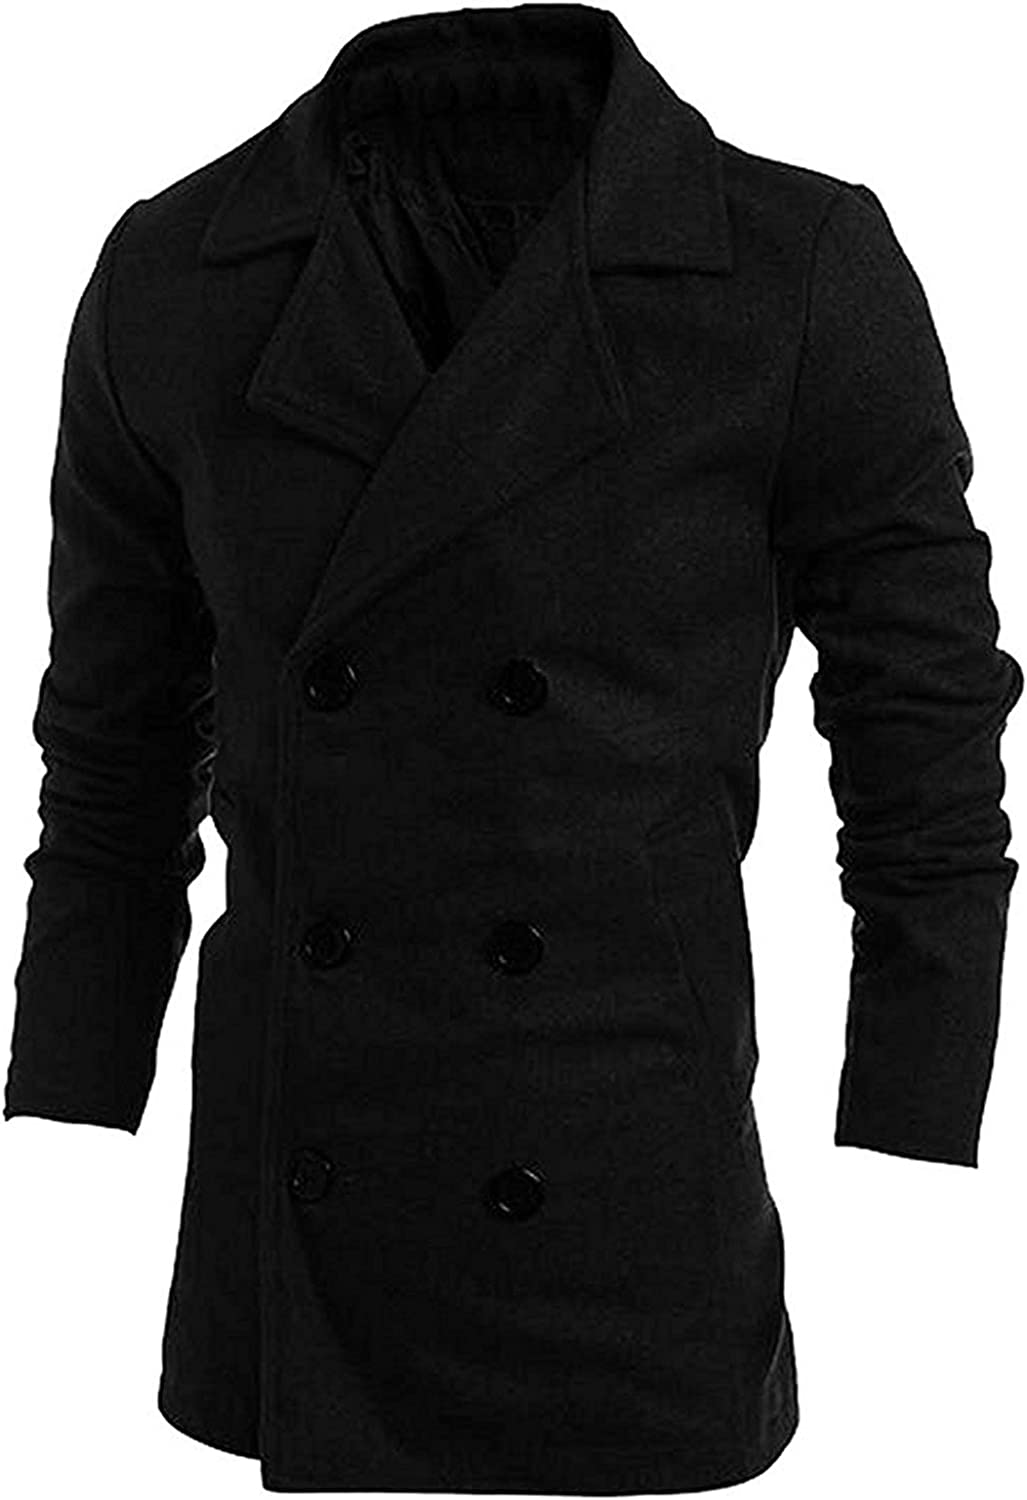 LOKOUO Mens Trendy Turn Down Collar Coat Double Breasted Trench Coat